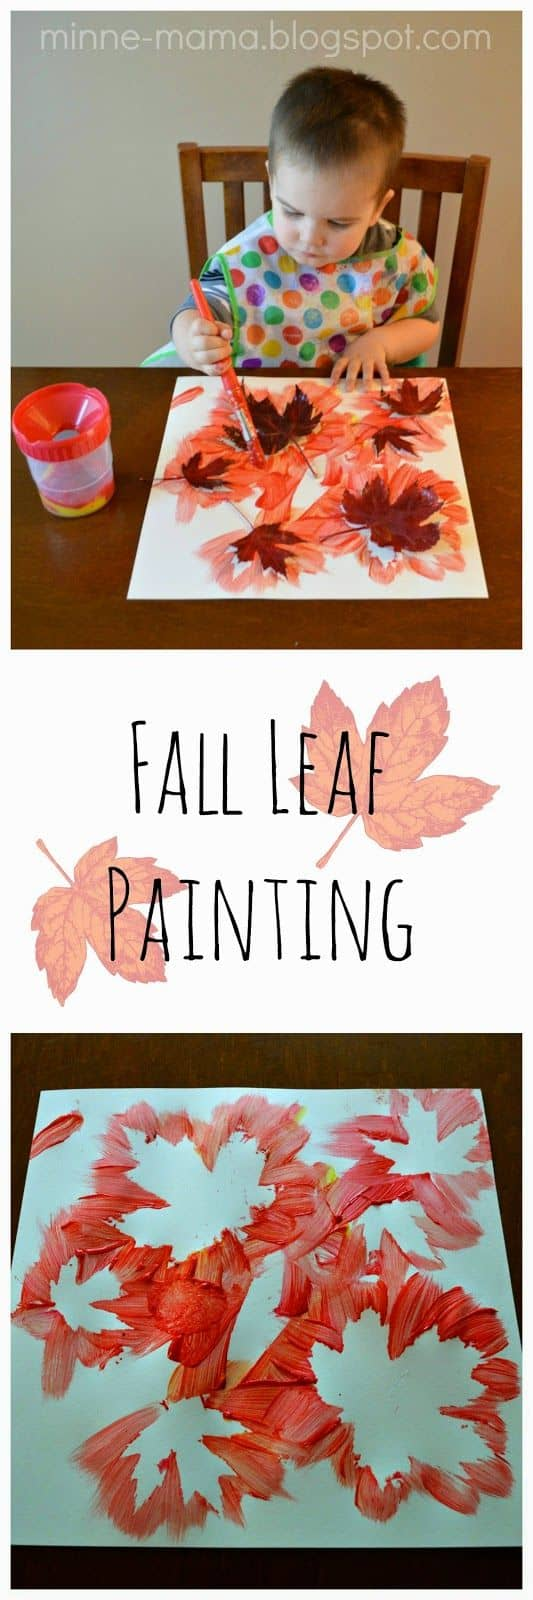 #16 FABRICATE AN ARTISTIC MASTERPIECE USING AUTUMN LEAVES ON A WHITE SHEET OF PAPER WITH DAB BRIGHT ORANGE COLORS AROUND THEM